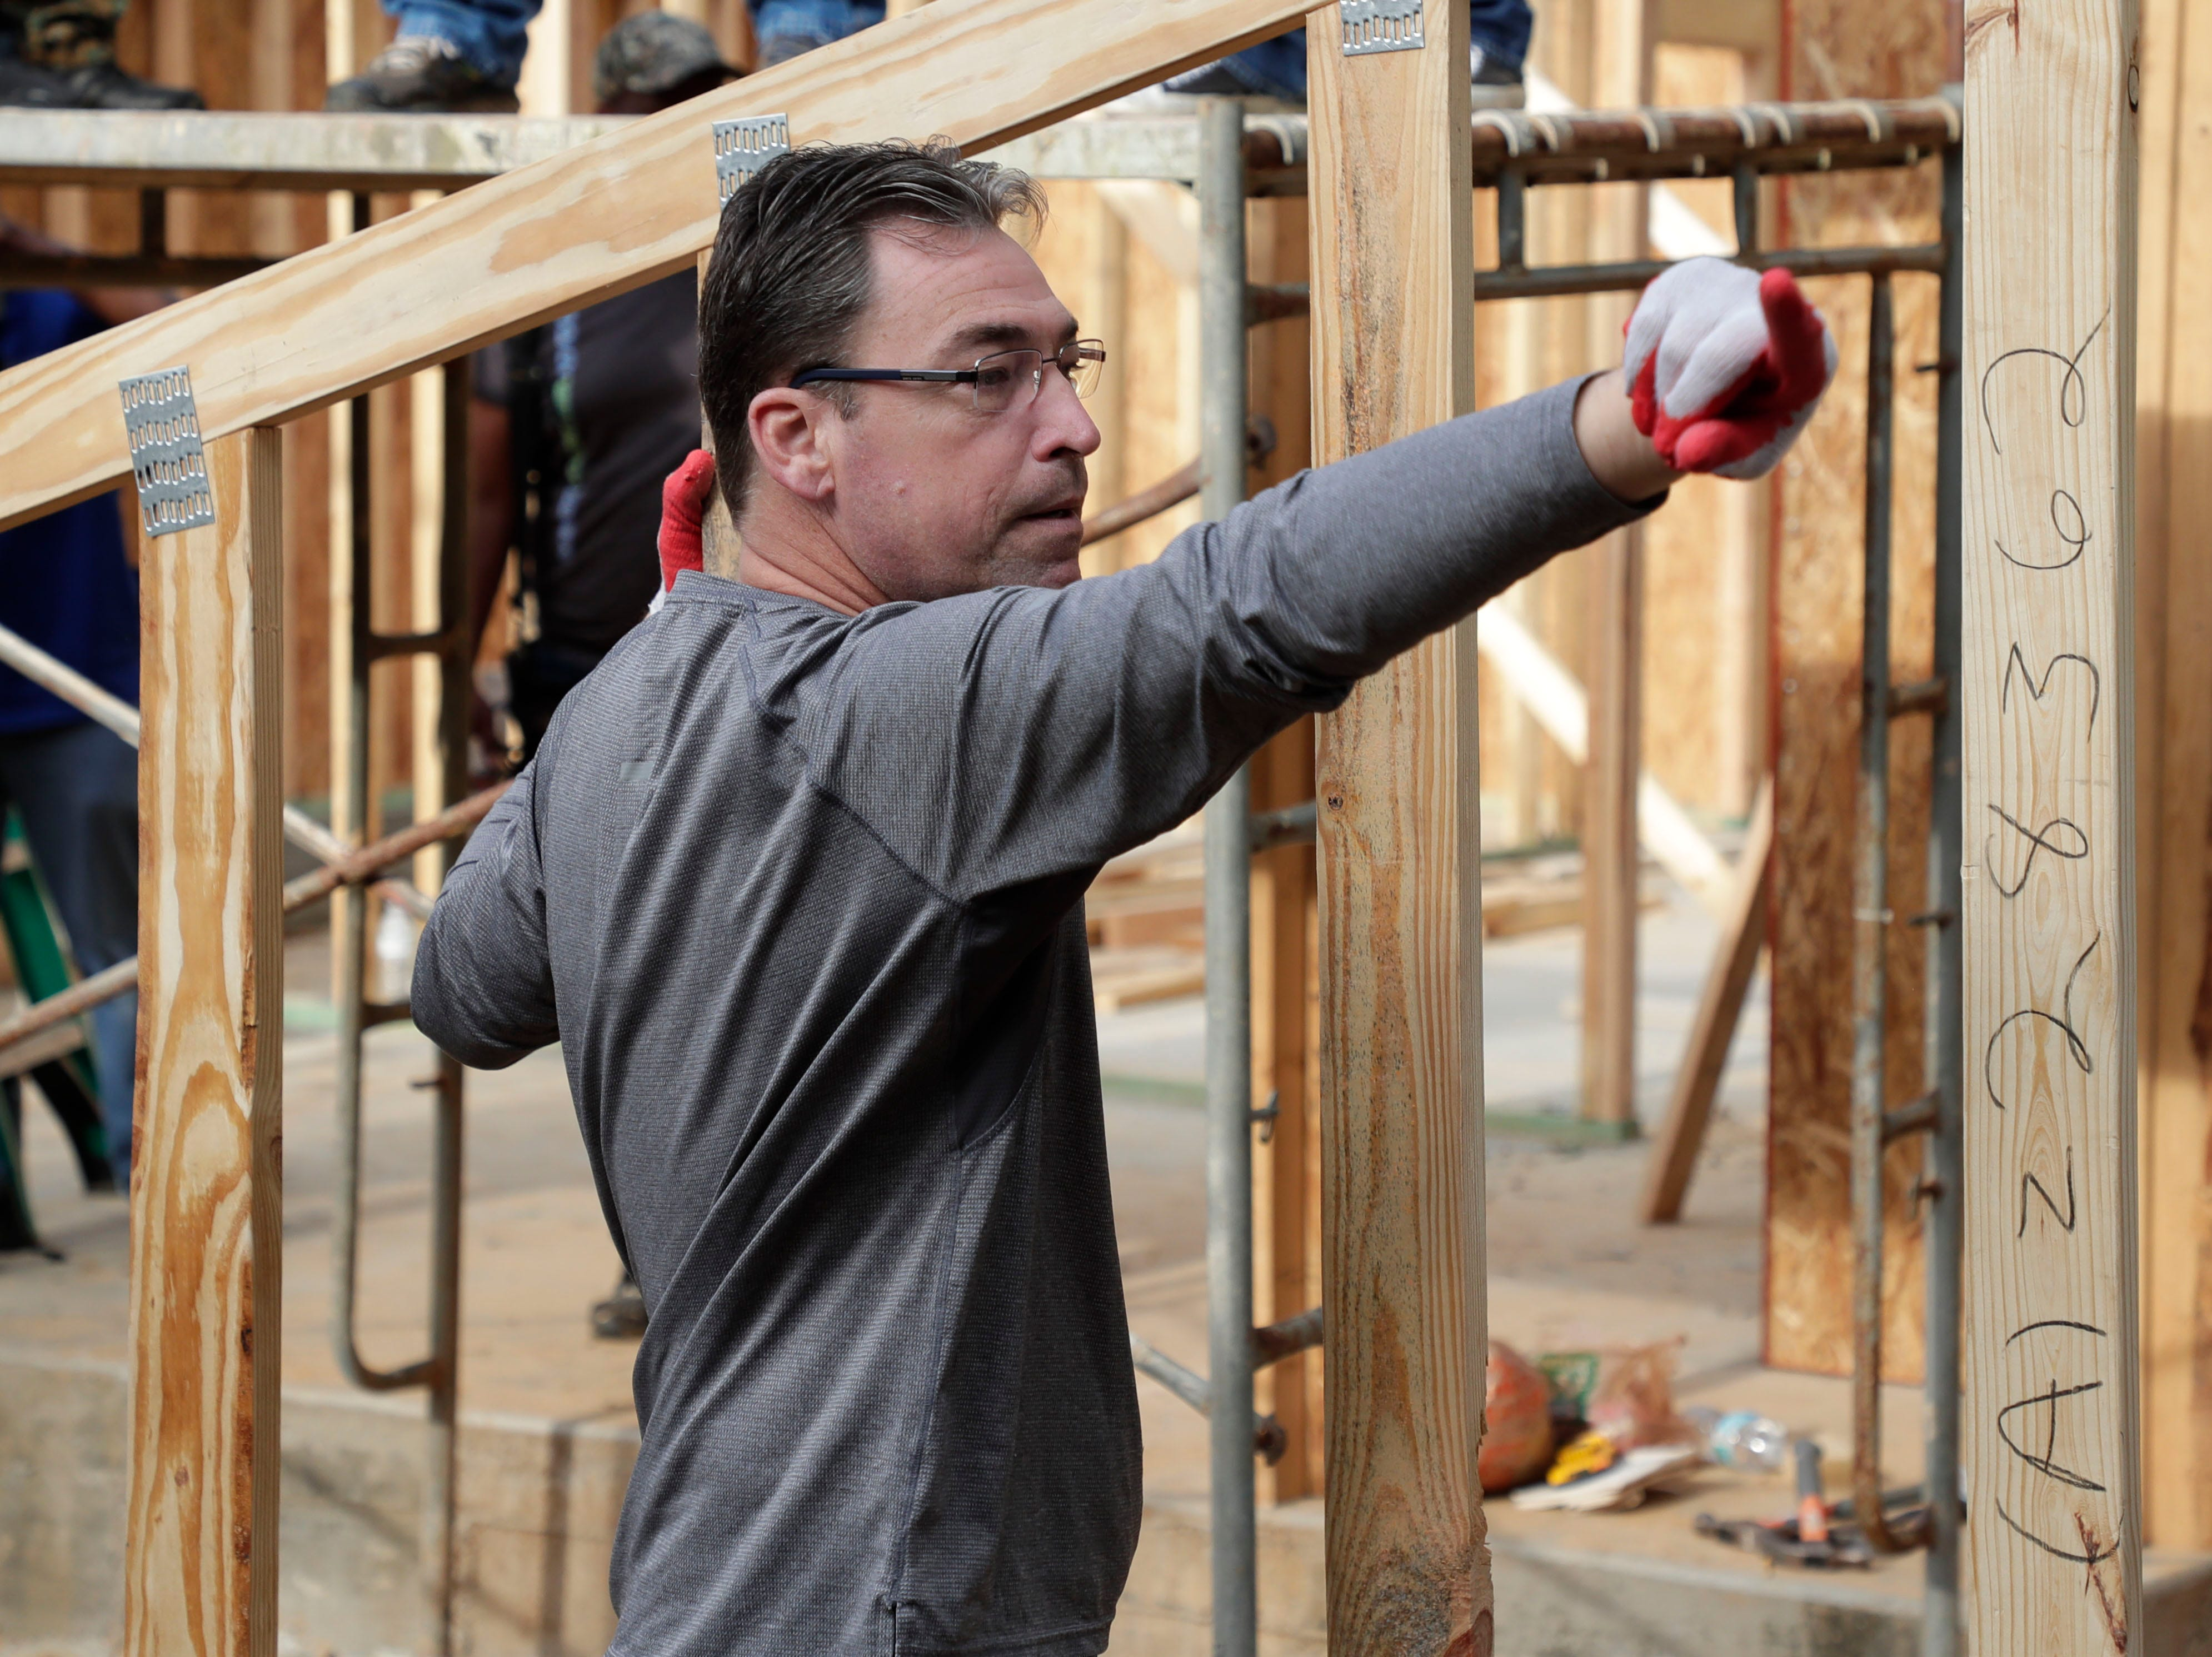 Chief of Police Michael DeLeo assists in lifting a frame for the roof of the future home for Recha Evans and her family Friday, April 12, 2019. Elected and appointed city officials, employee volunteers and representatives from Habitat for Humanity work together to build Evans' home.